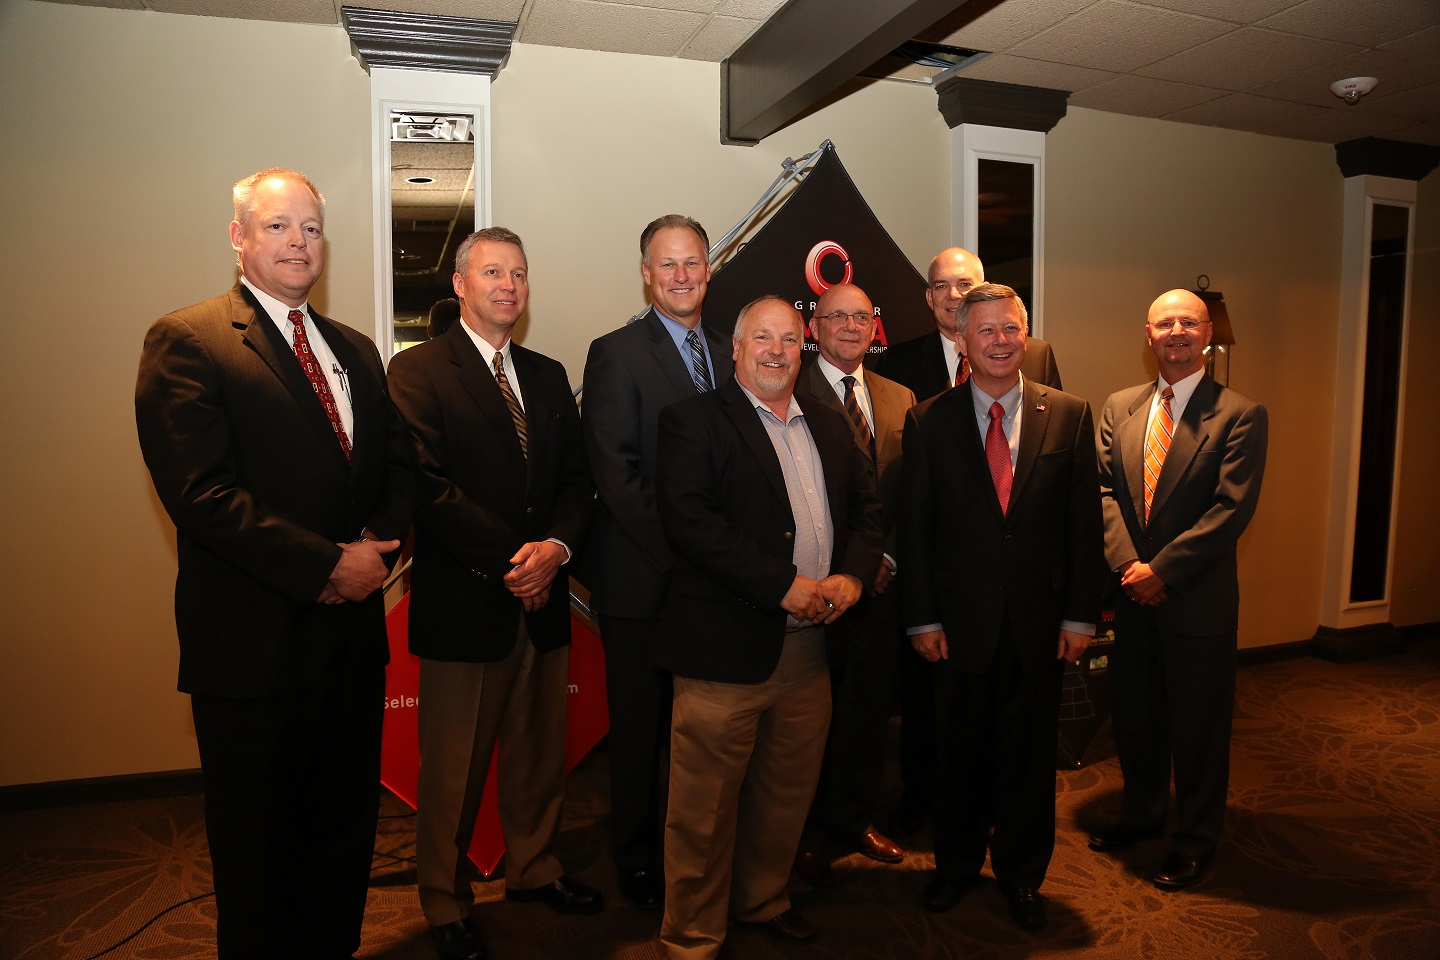 Executive Board with David Brown, Mayor Getzschman & Governor Heineman